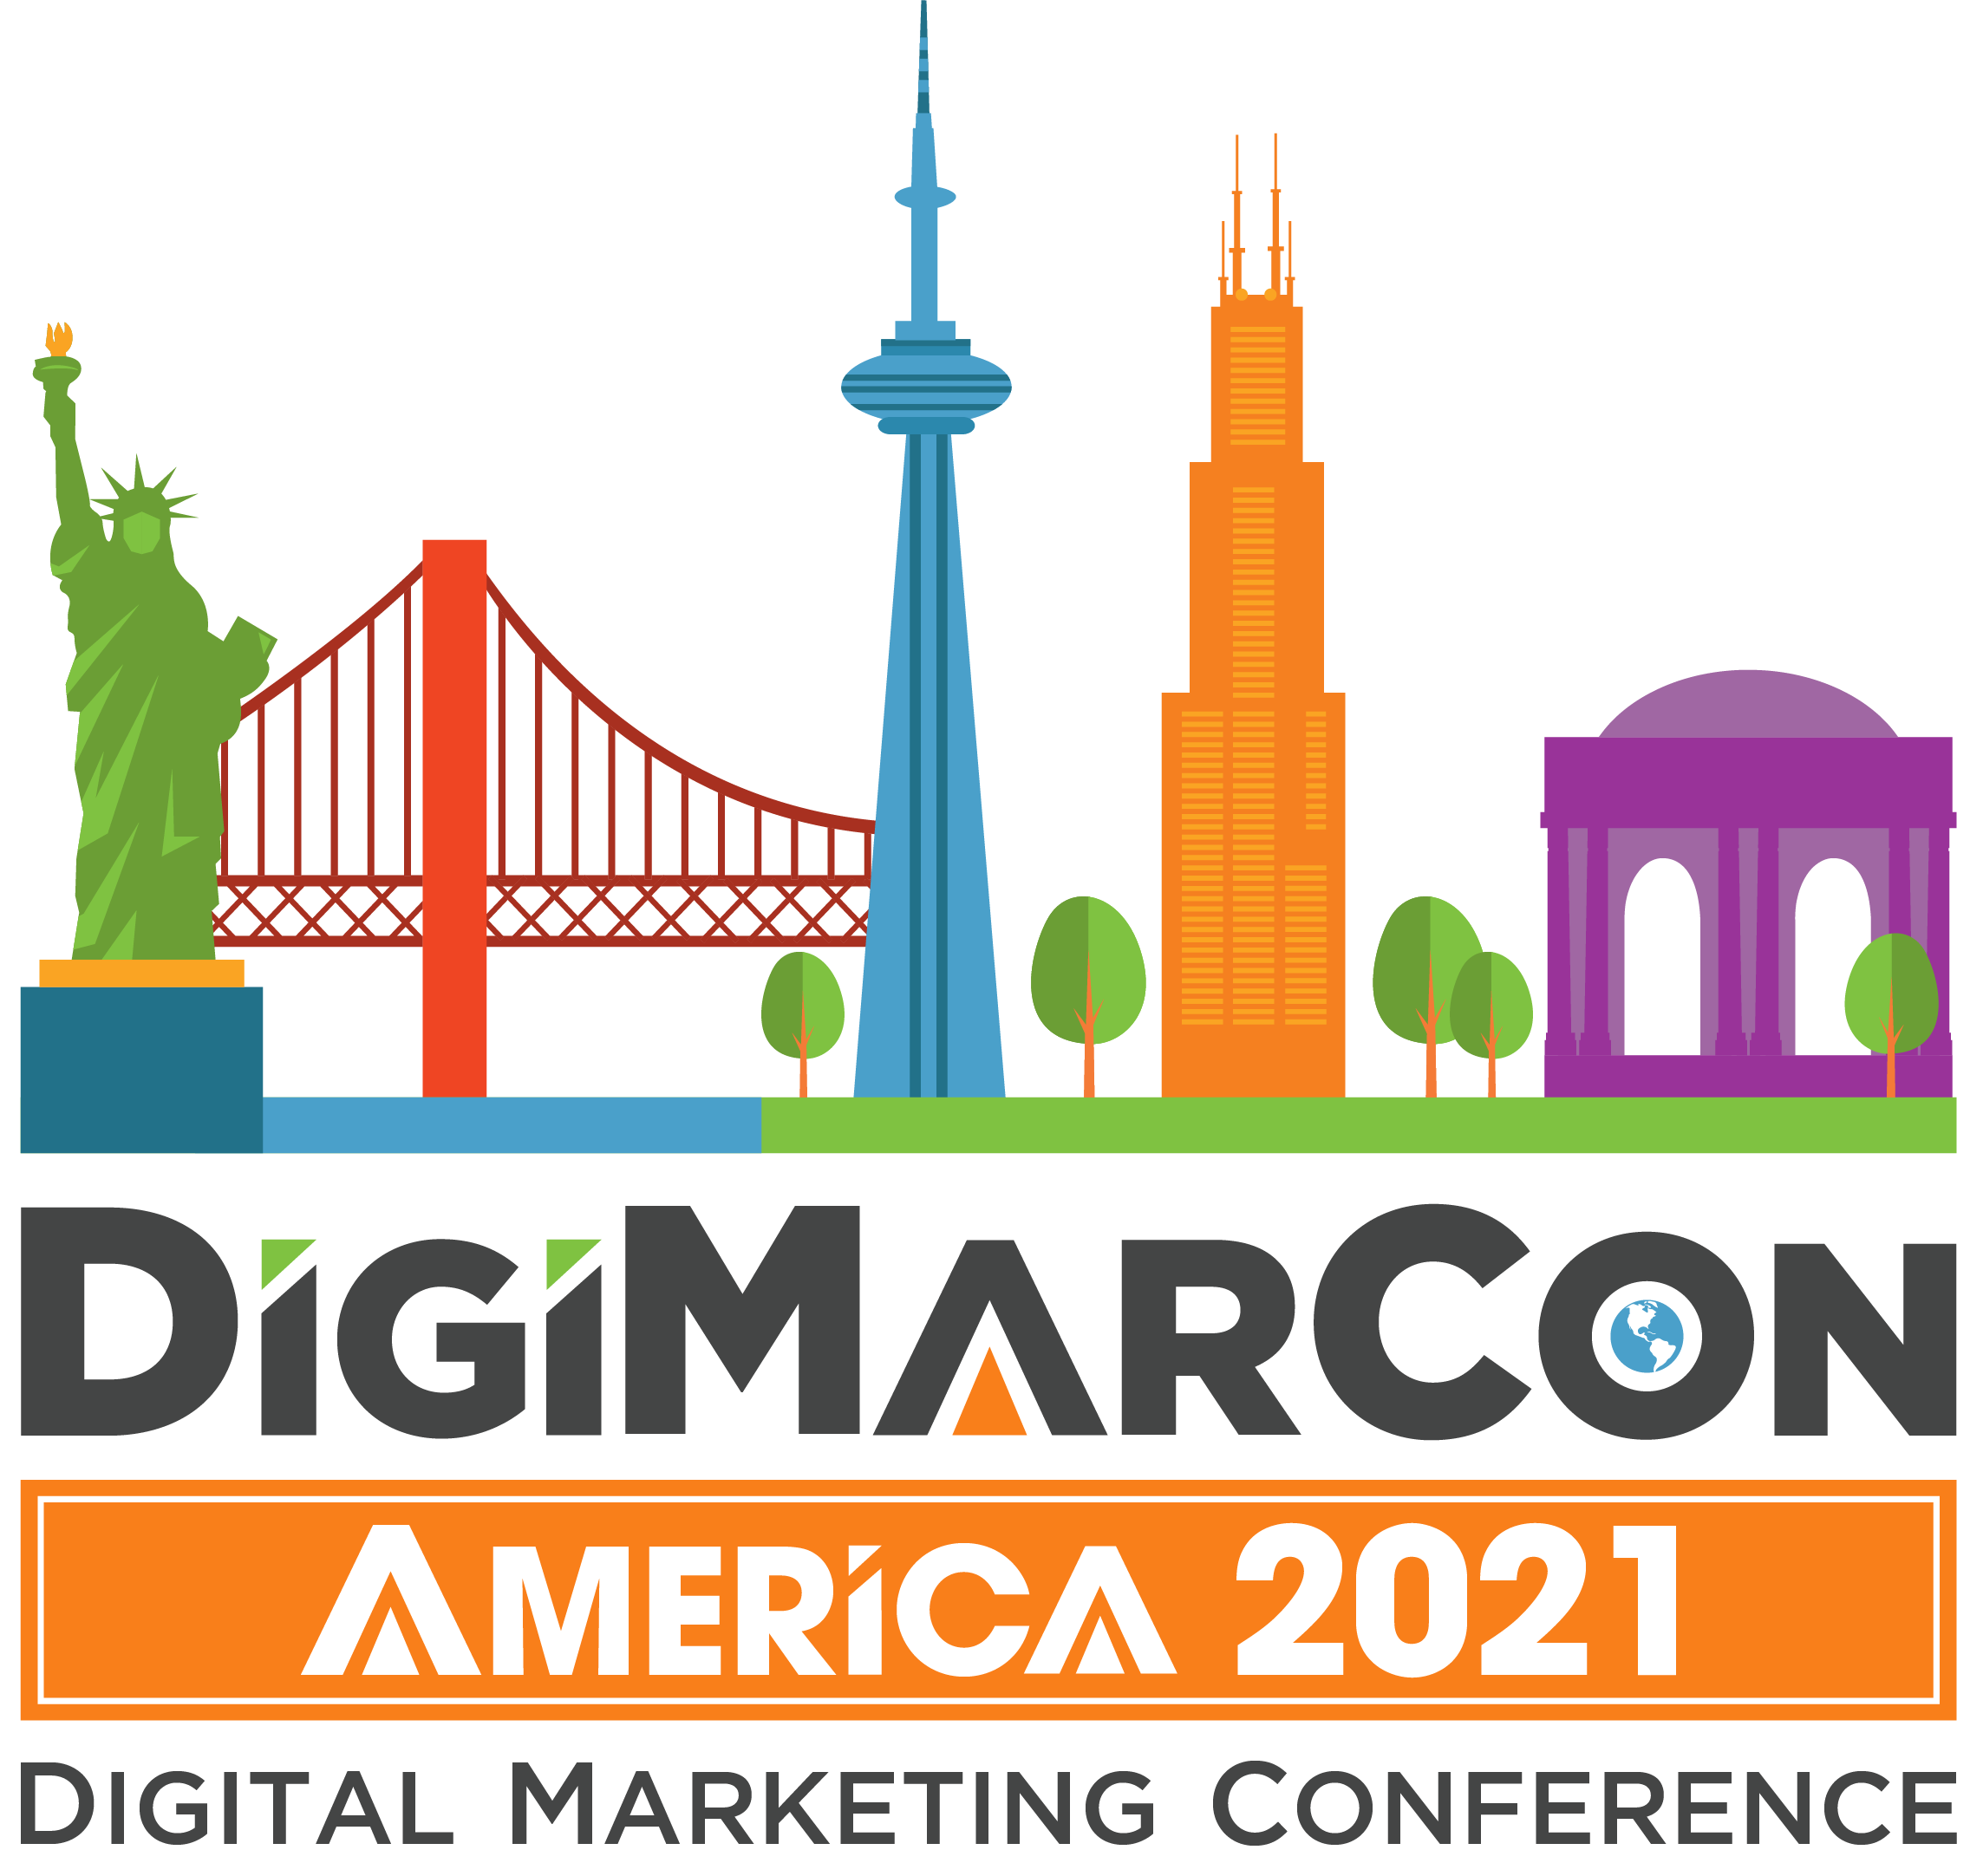 DigiMarCon America 2021 – Digital Marketing, Media and Advertising Conference